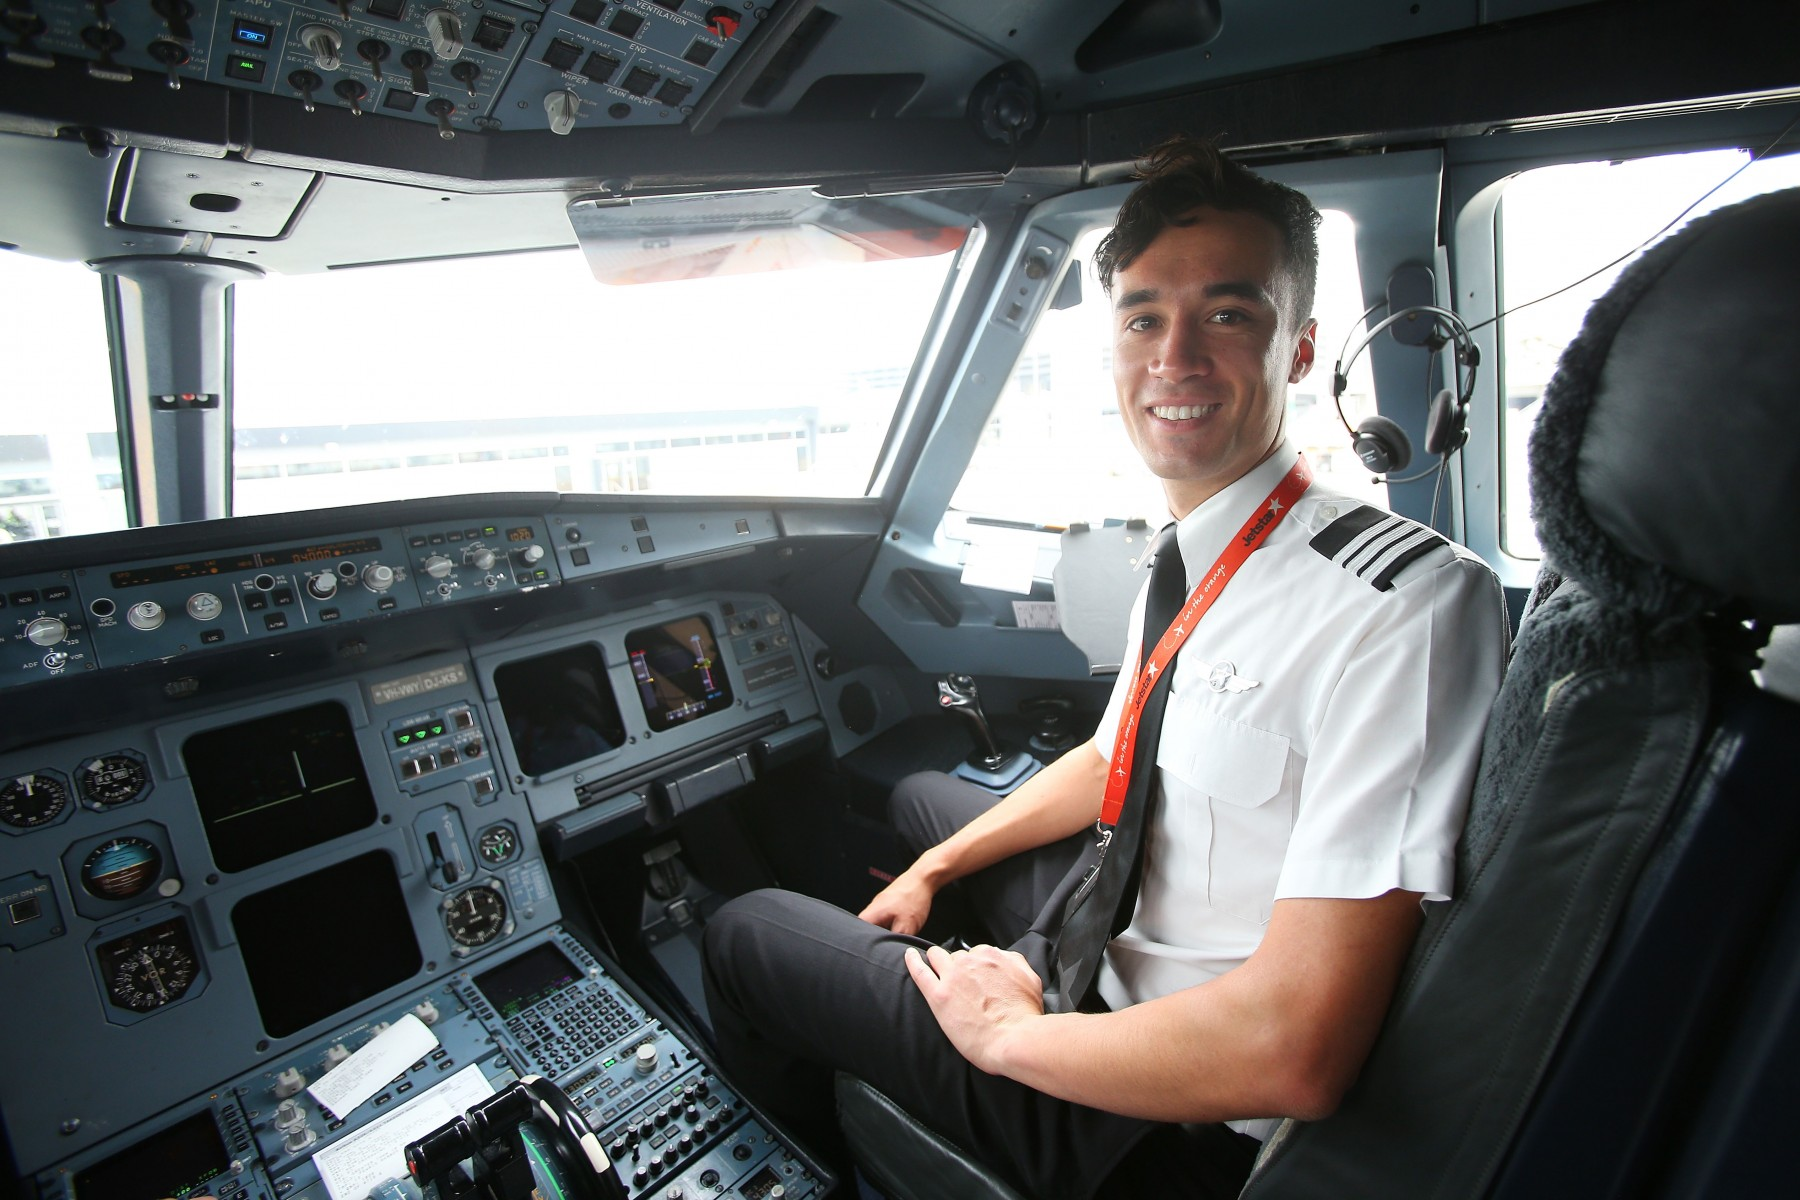 Airbnb For Cars >> Jetstar's exclusive cadet pilot program attracts hundreds